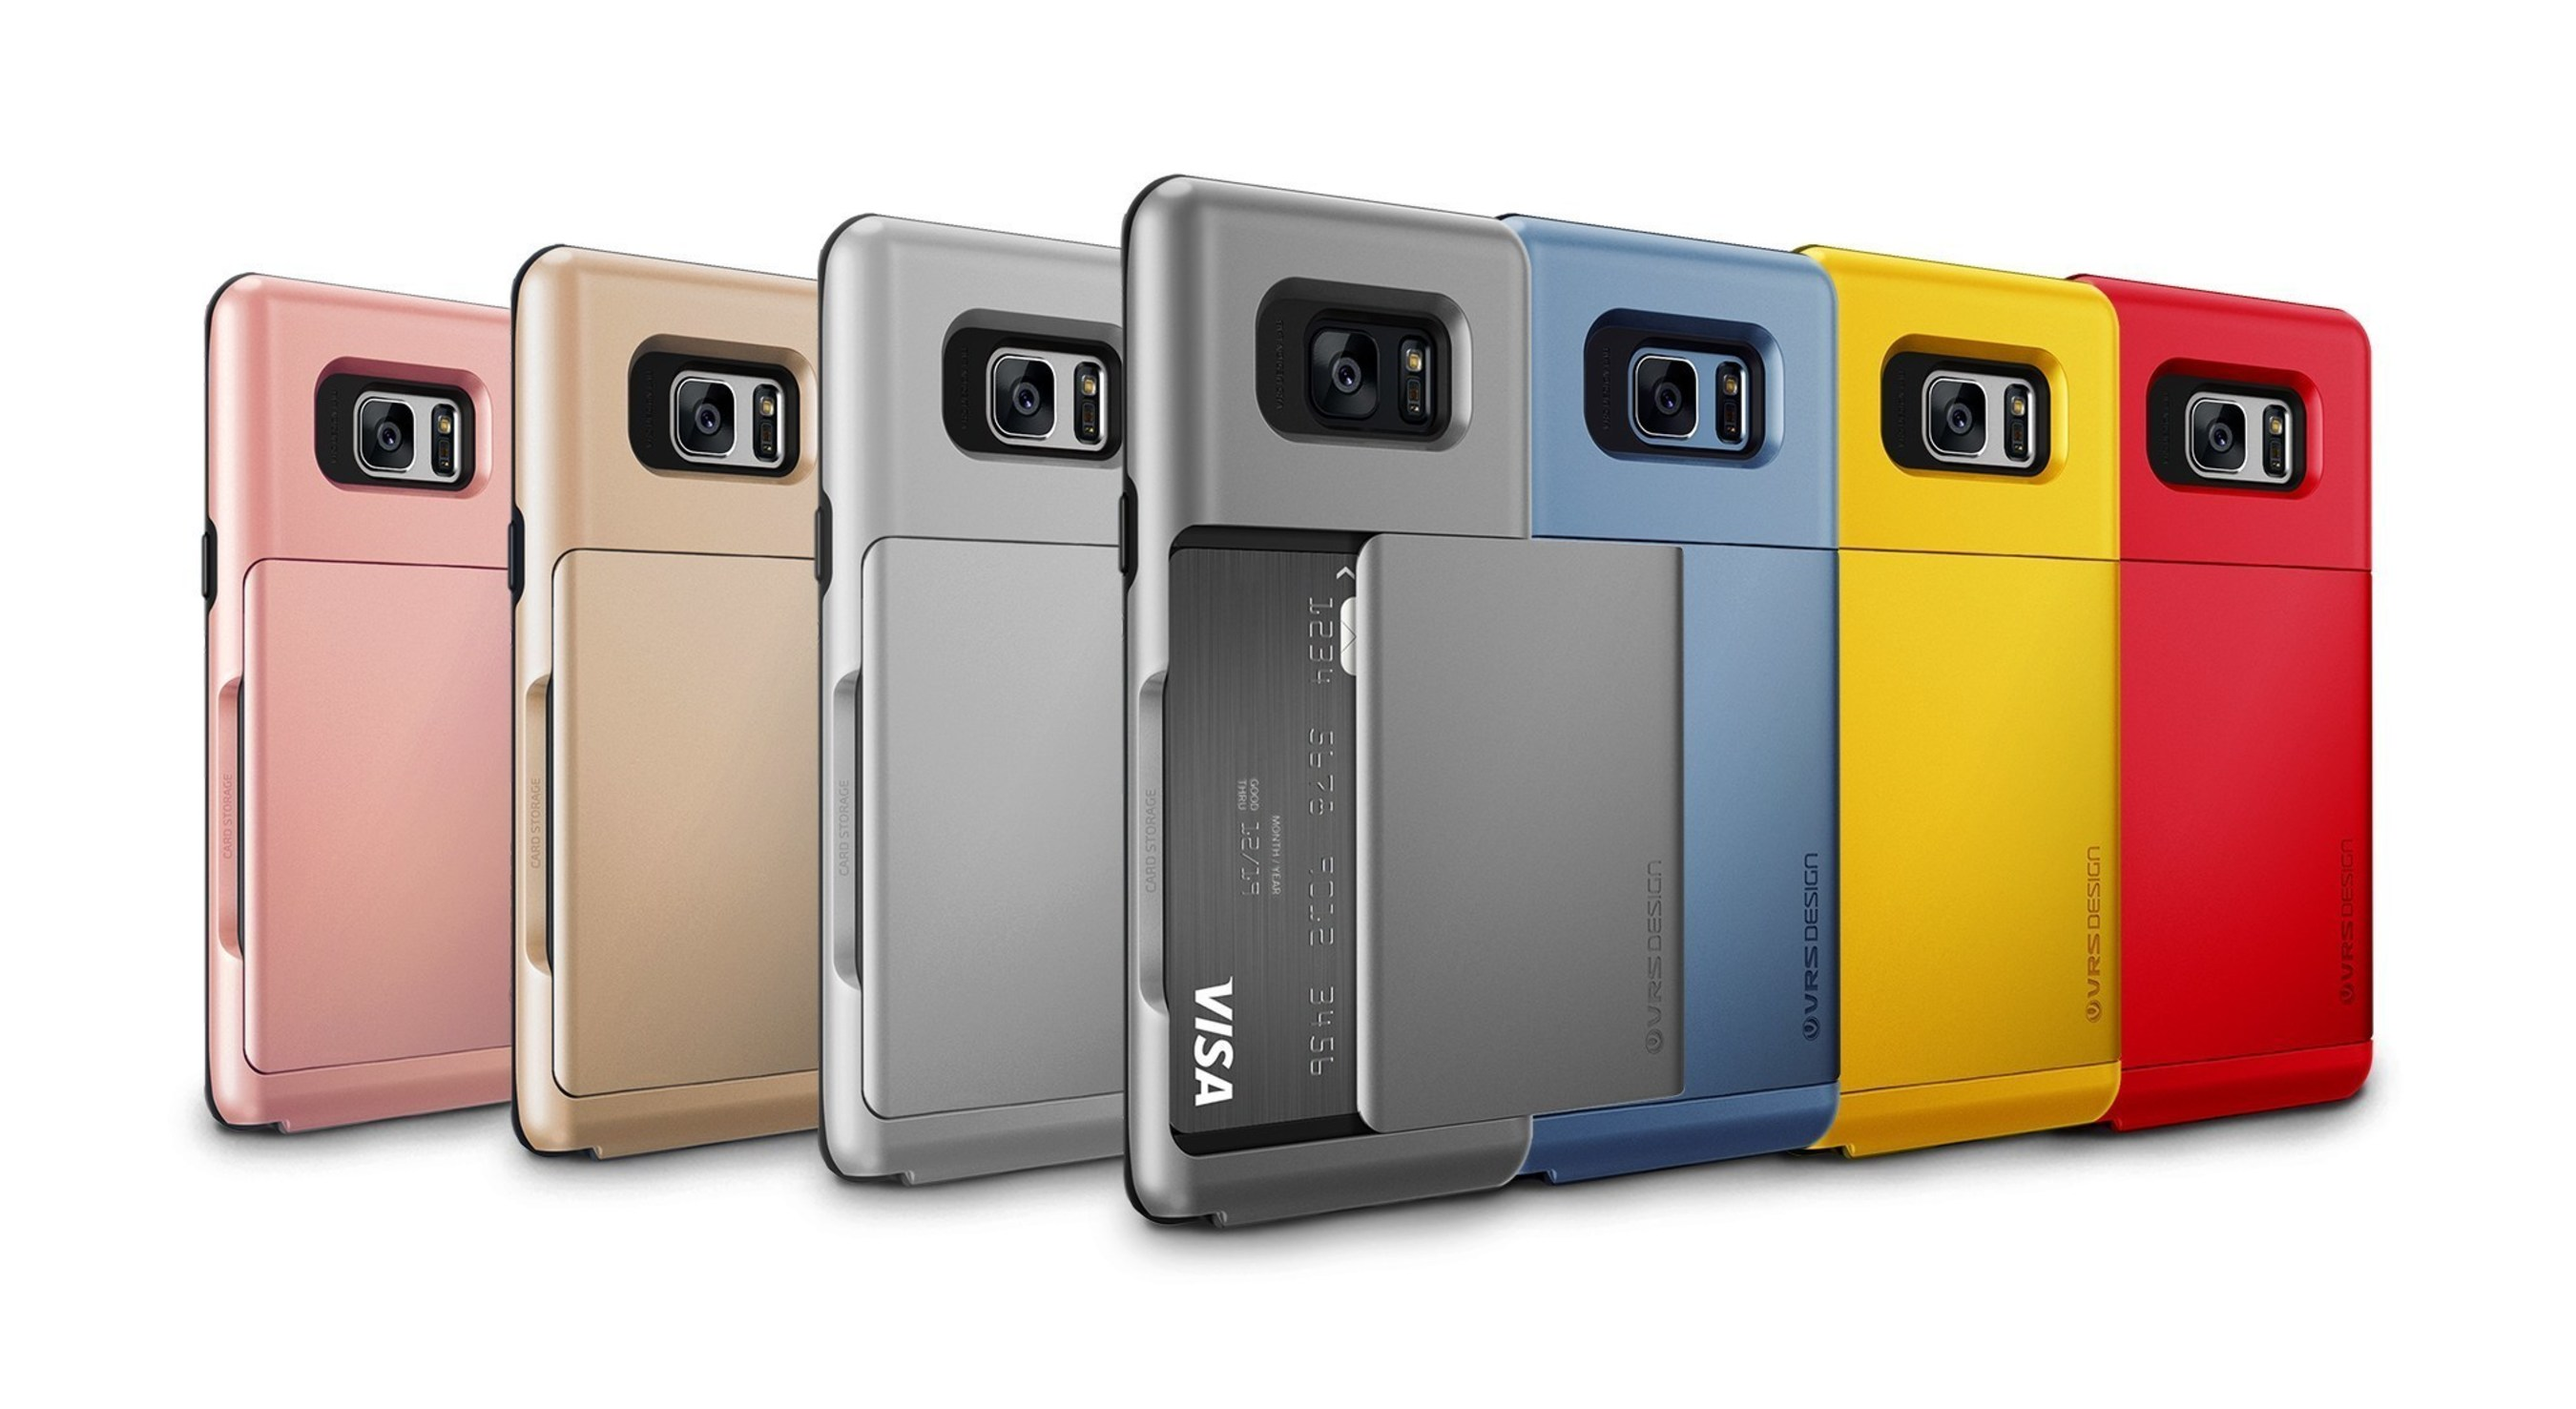 VRS Design introduces the Damda Glide Series. Available in seven different colors: Rose Gold; Shine Gold; Light Silver; Dark Silver; Blue Coral; Indie Yellow; Apple Red